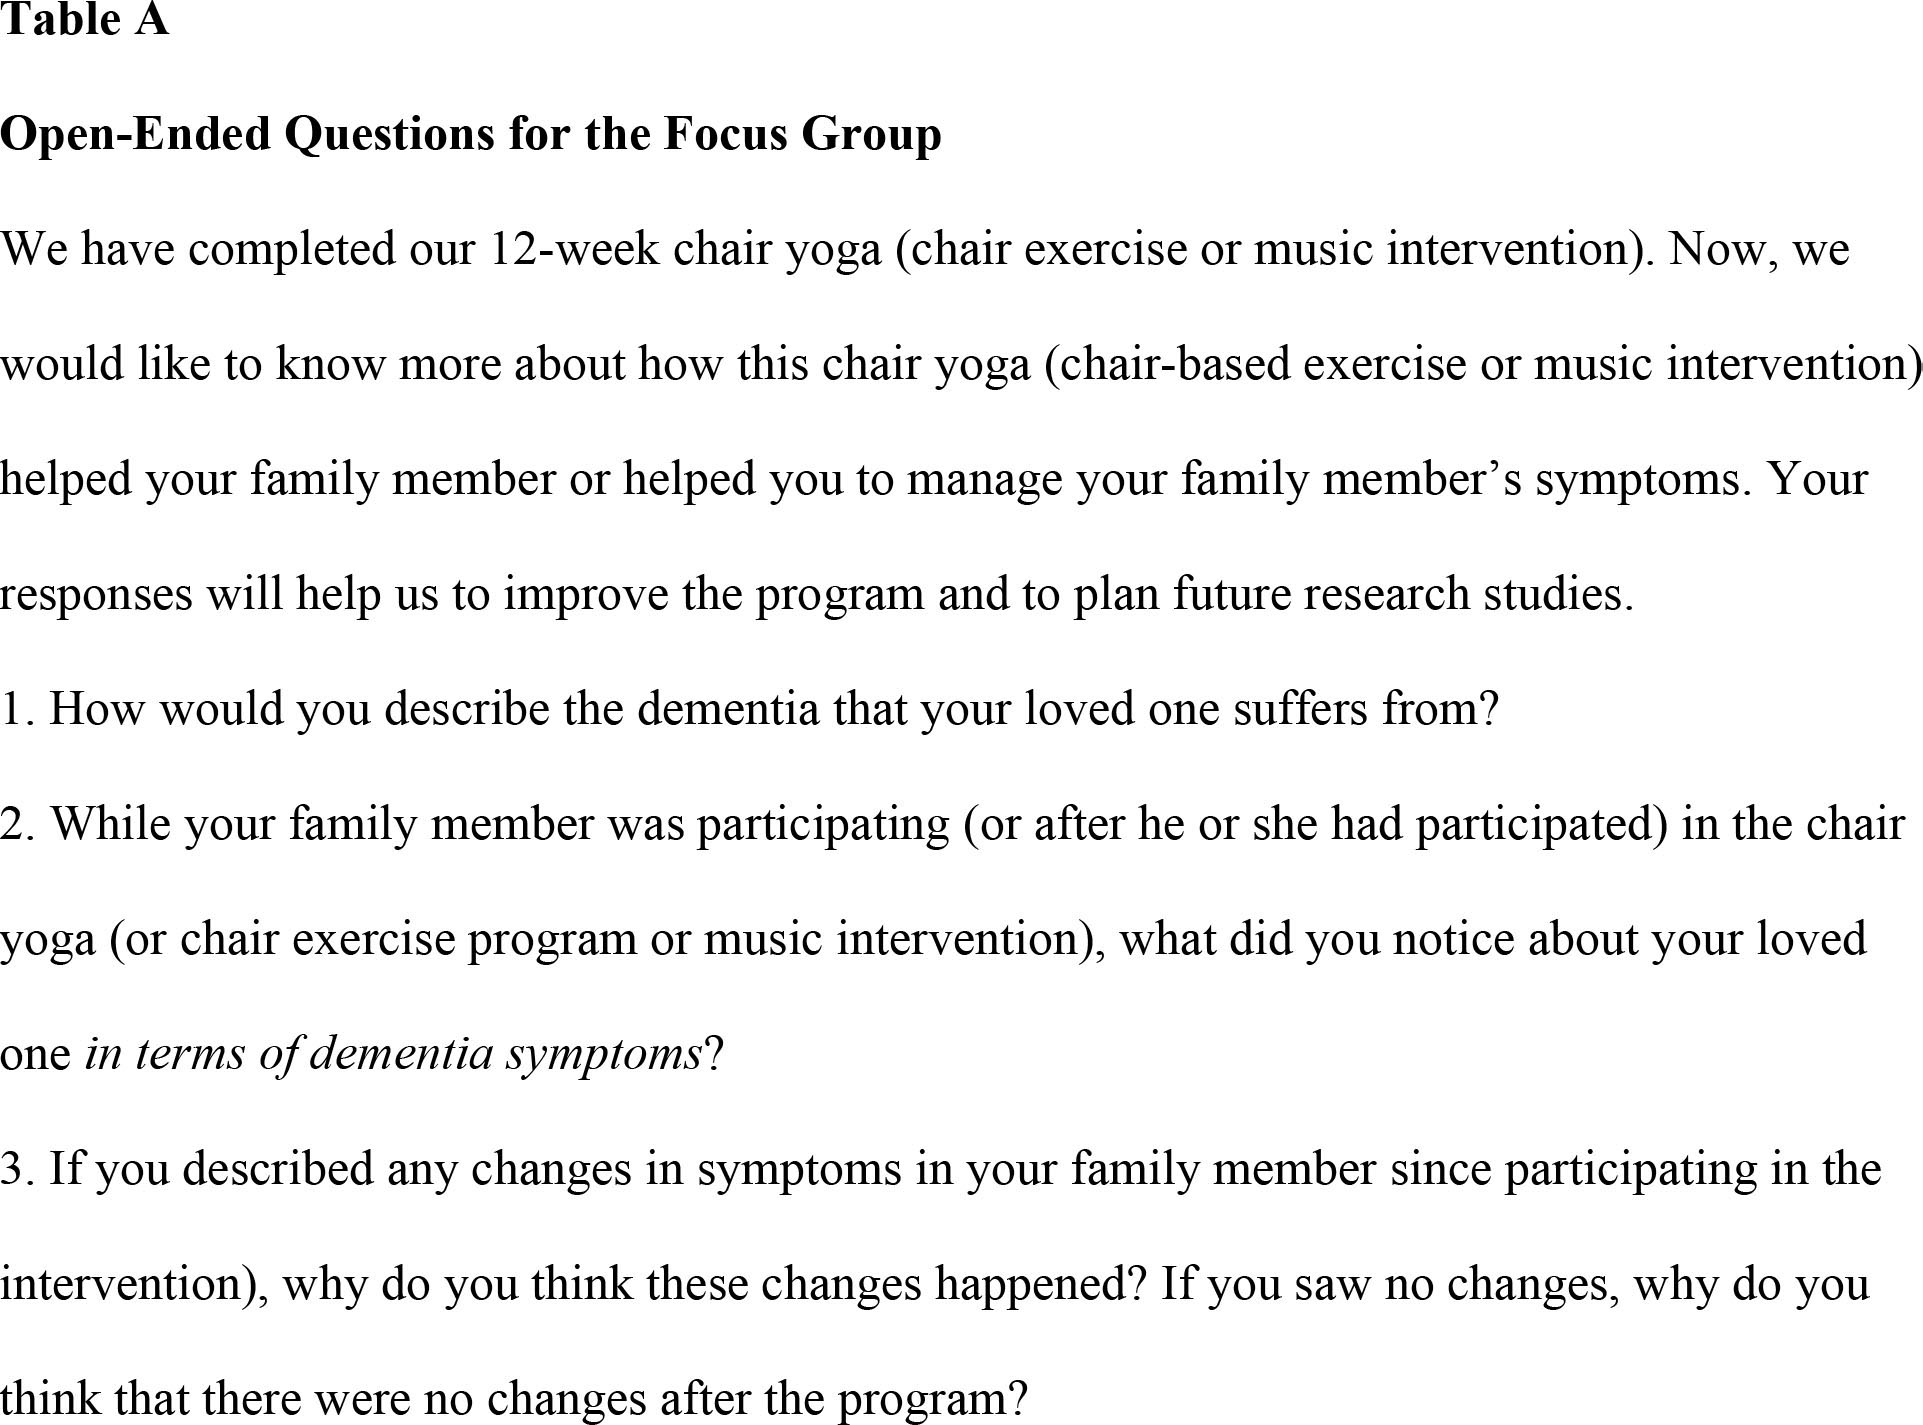 Open-Ended Questions for the Focus Group